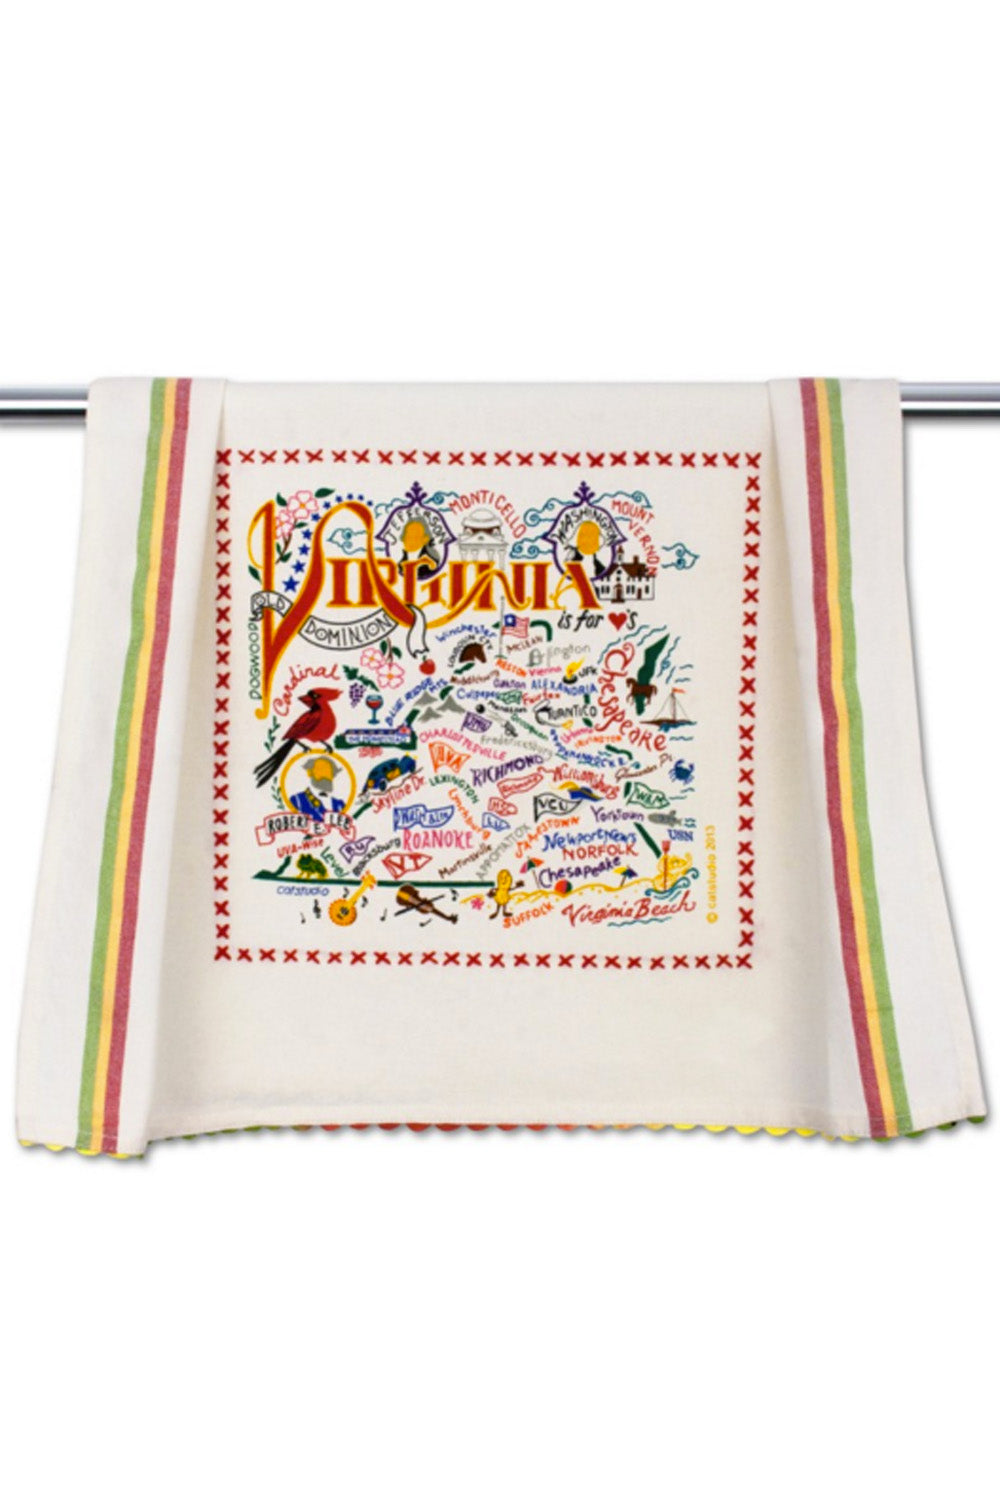 Embroidered Dish Towel - Virginia